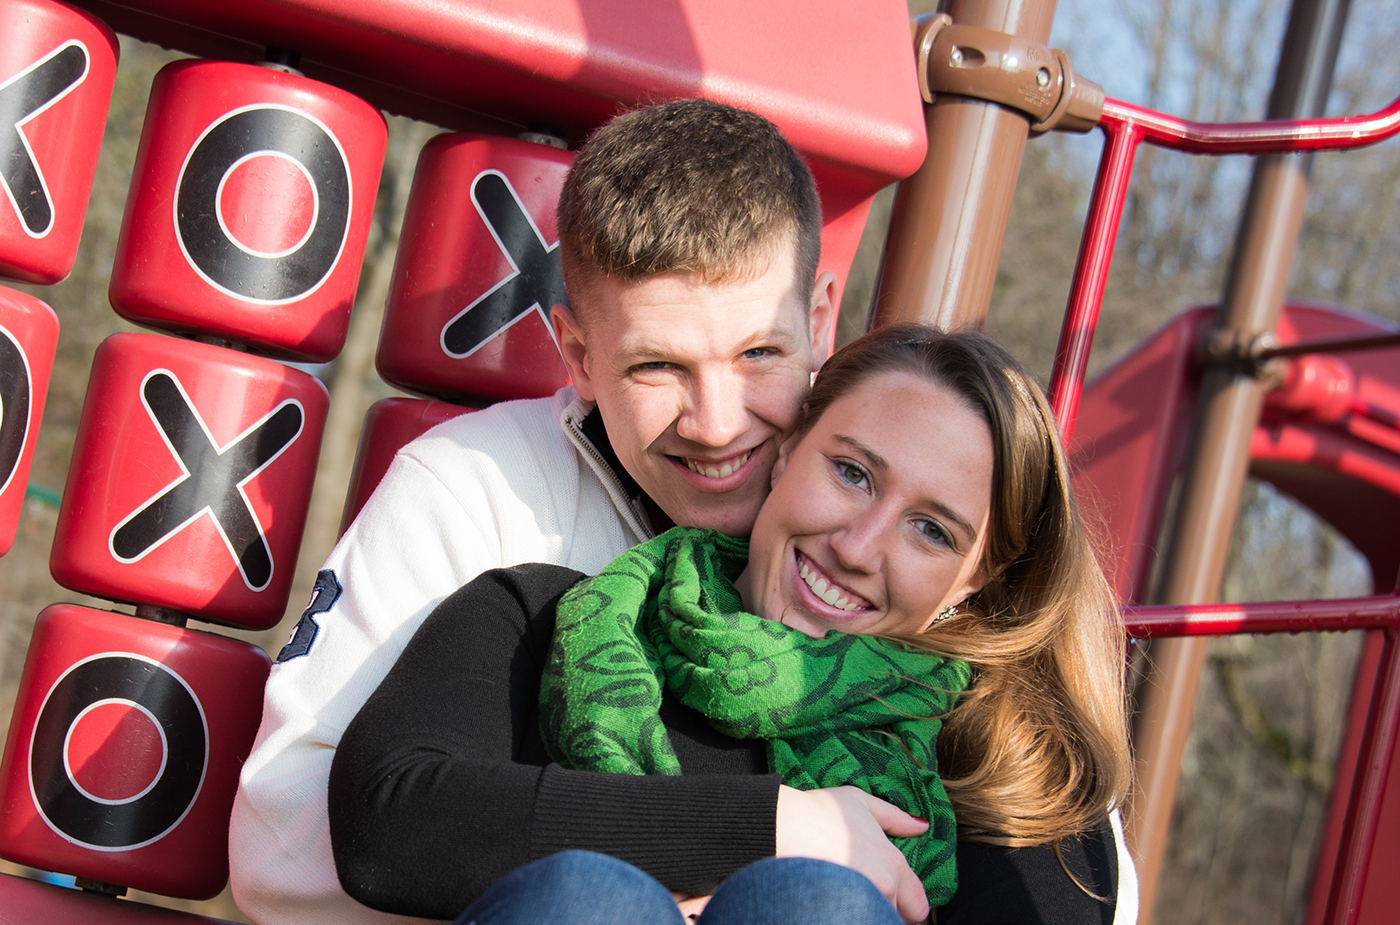 All Occasions Photography Albany NY - Engagement Photography on Playground